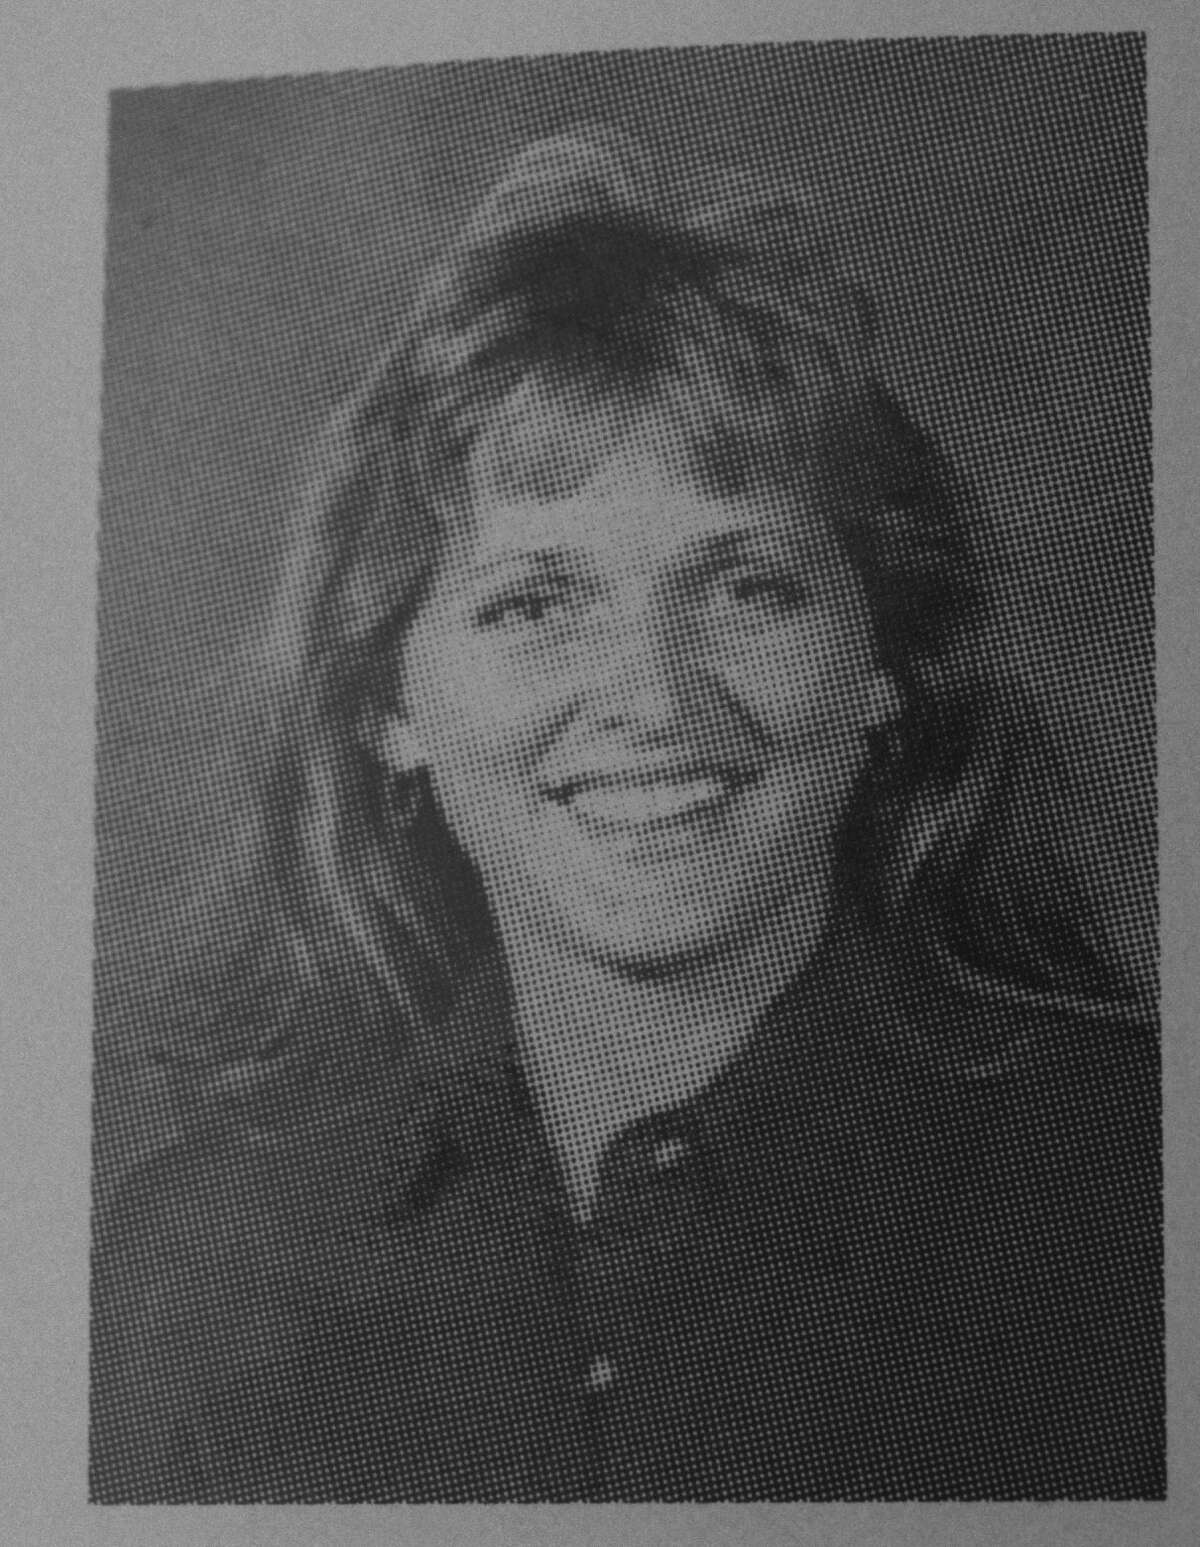 Yearbook photo of Belinda Temple, a teacher at Katy High School, who was murdered in 1999. David Temple went to trial for the murder in 2007 and was convicted and sentenced to life in prison.